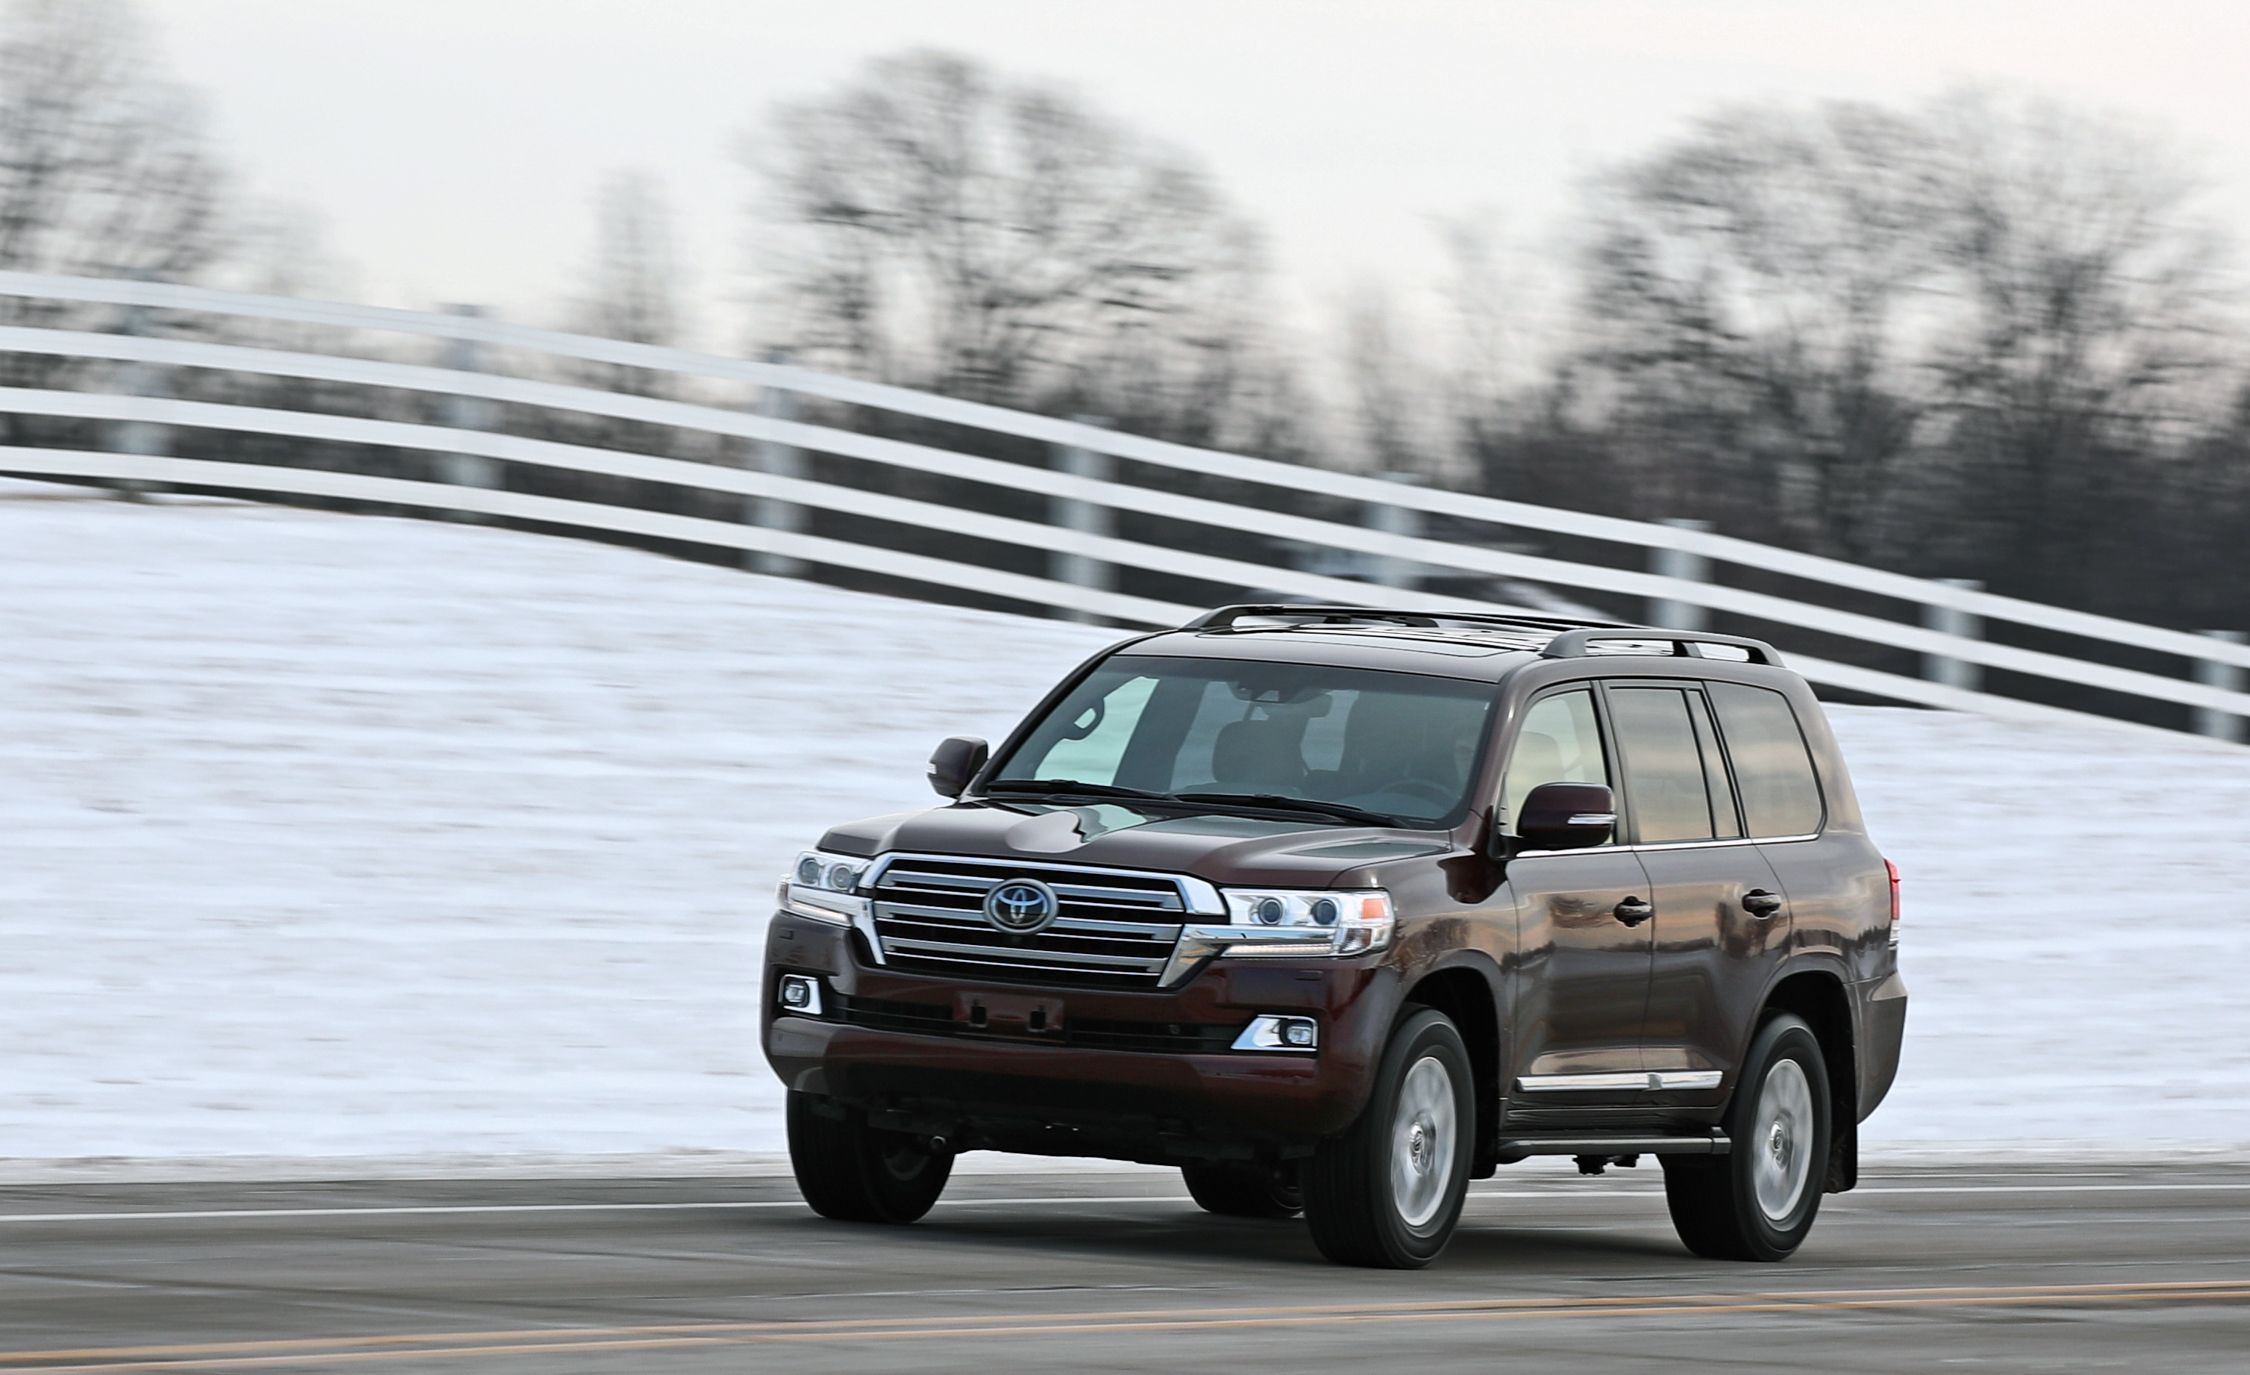 2019 Toyota Land Cruiser Reviews | Toyota Land Cruiser Price, Photos, and  Specs | Car and Driver